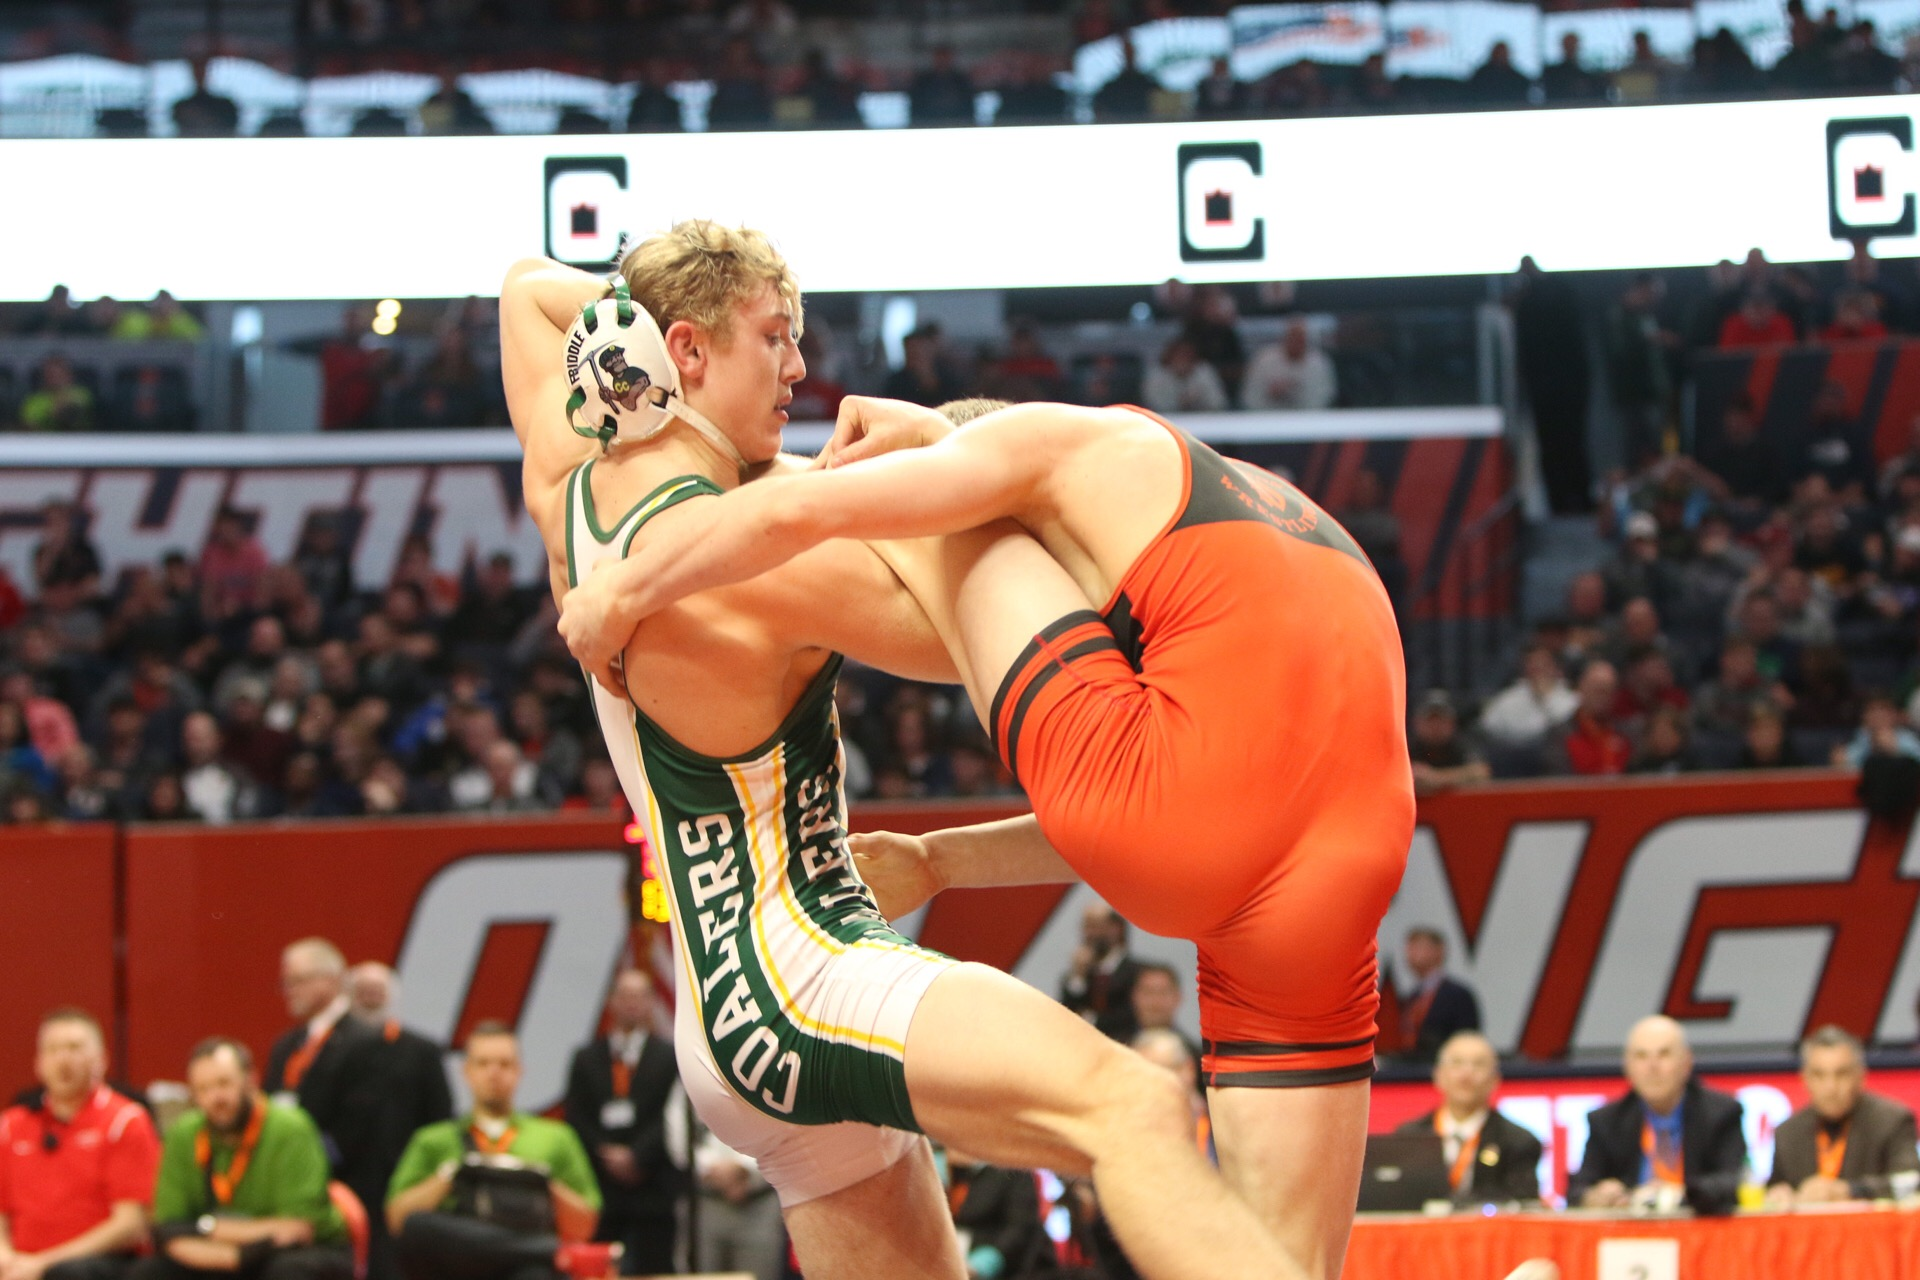 Alex-Friddle-State19-01